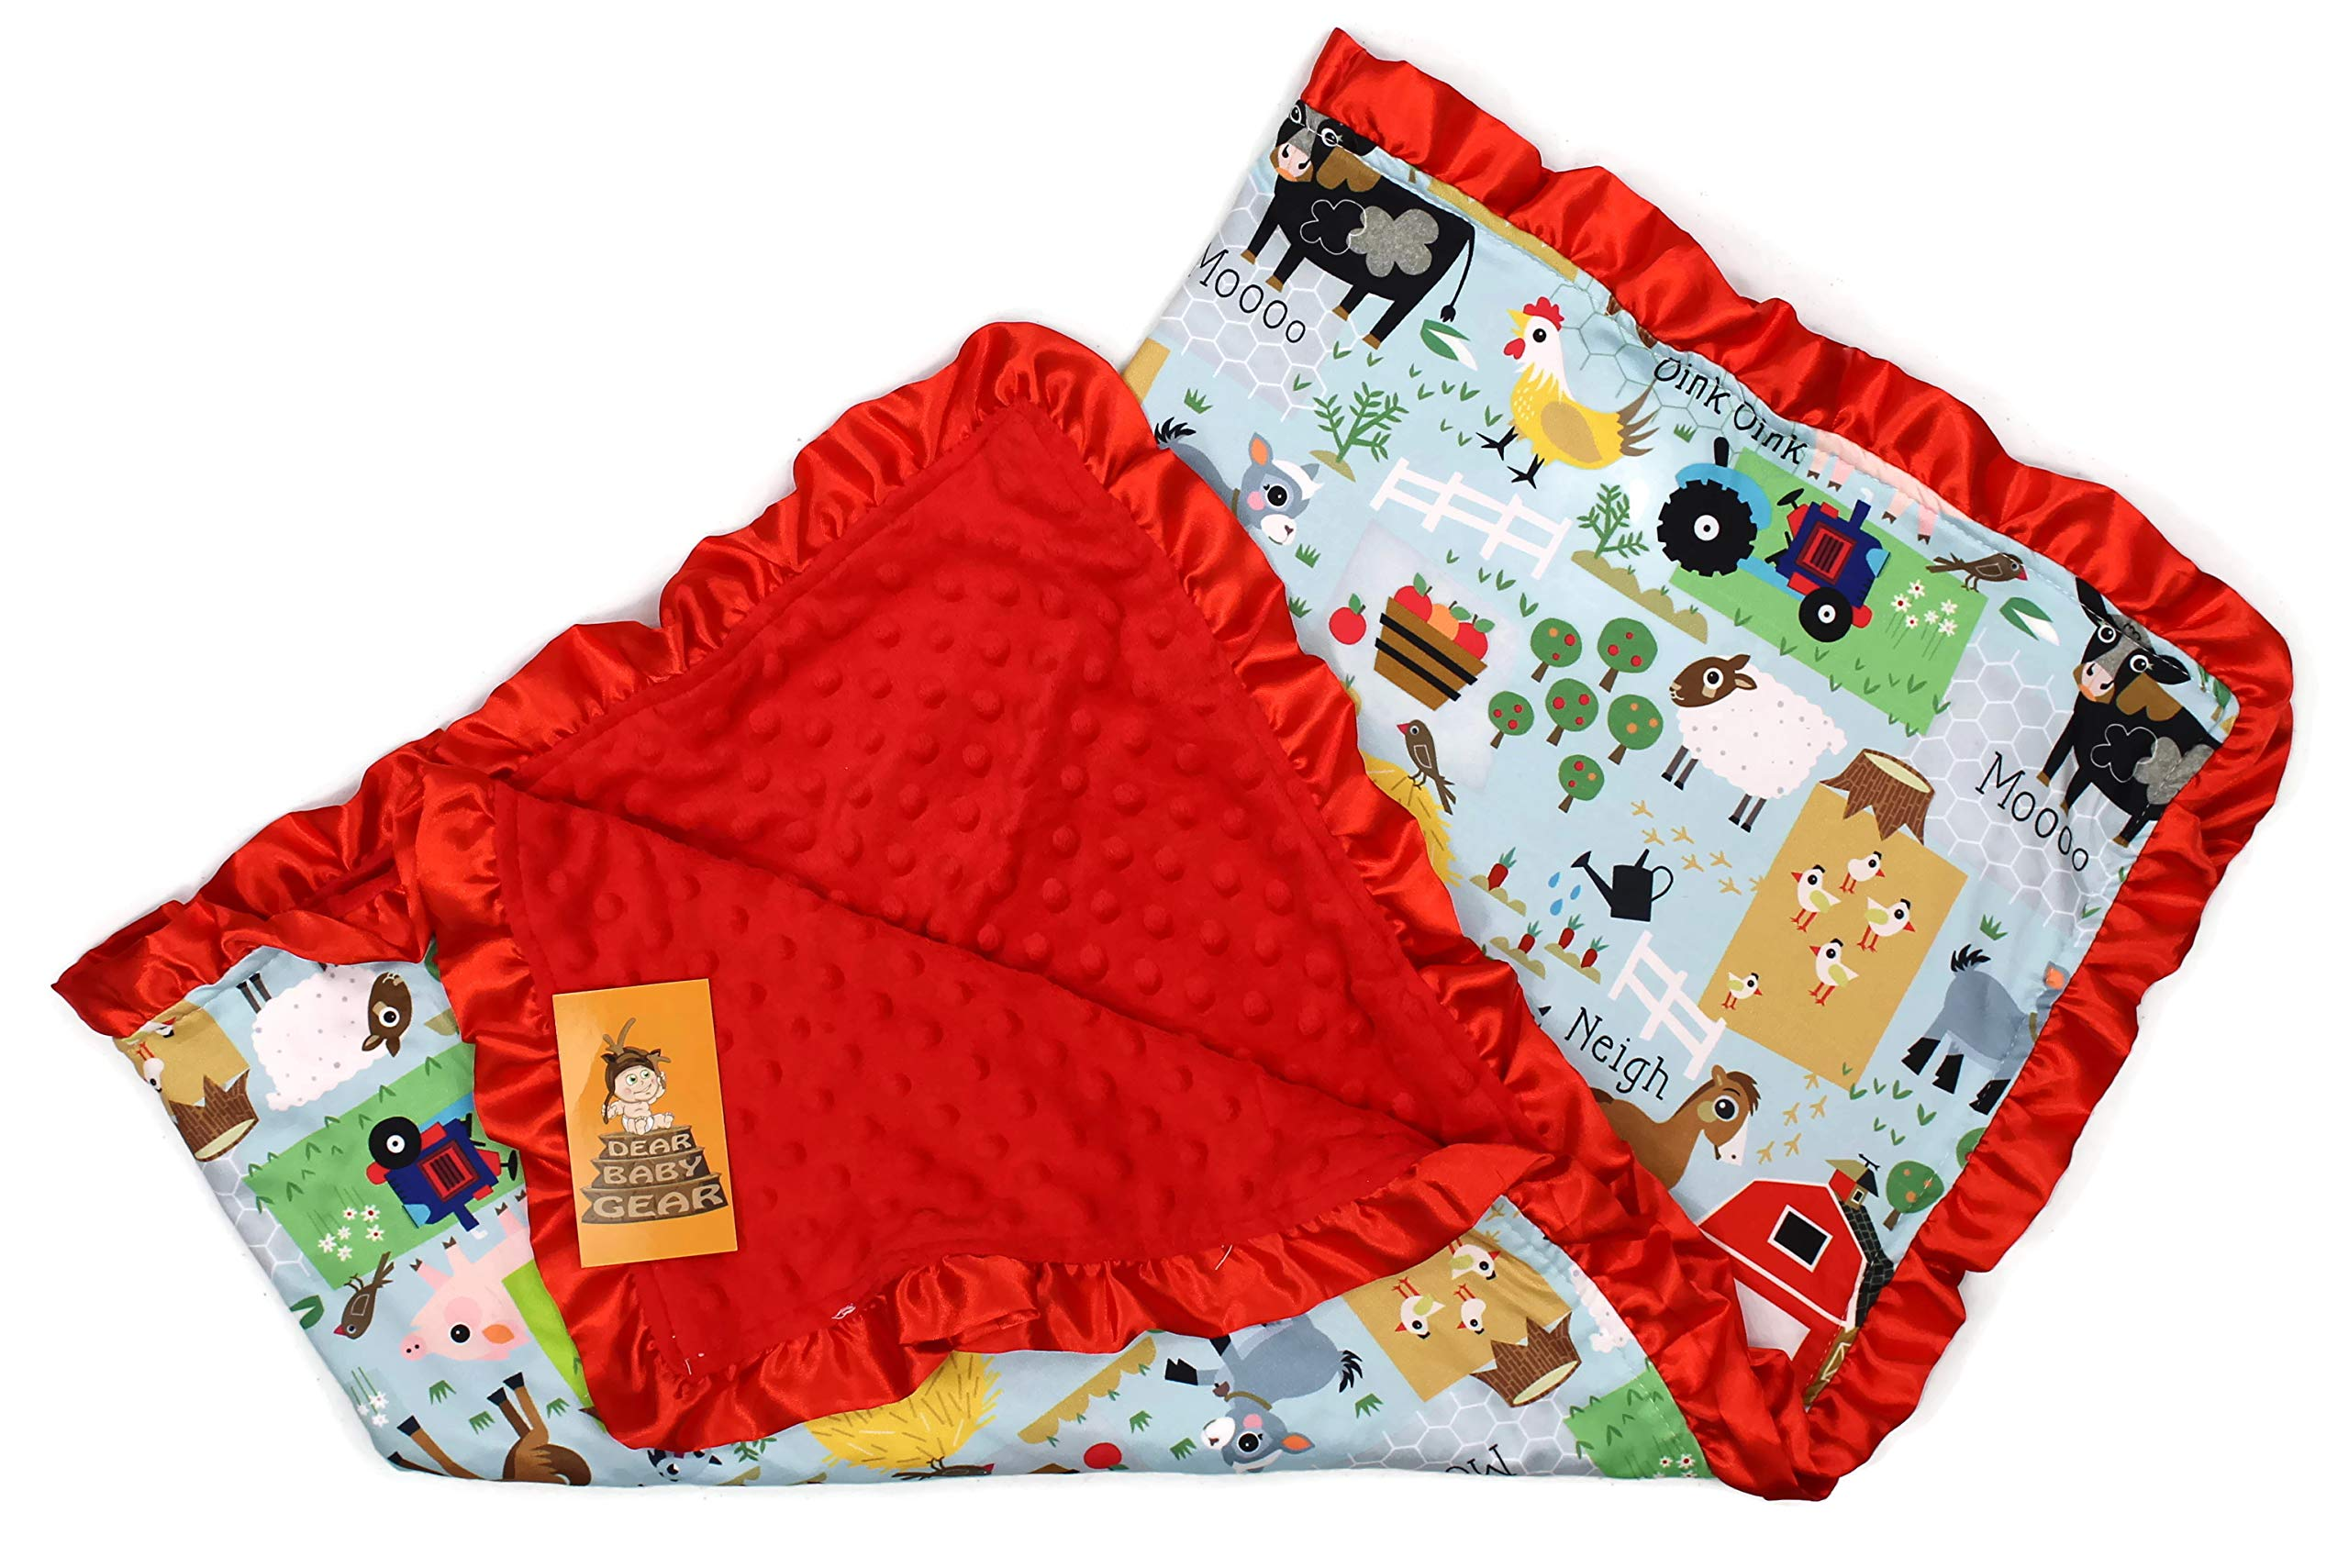 Dear Baby Gear Baby Blankets, Farm Life Animals, Tractor, Red Minky, 32 inches by 32 inches by Dear Baby Gear